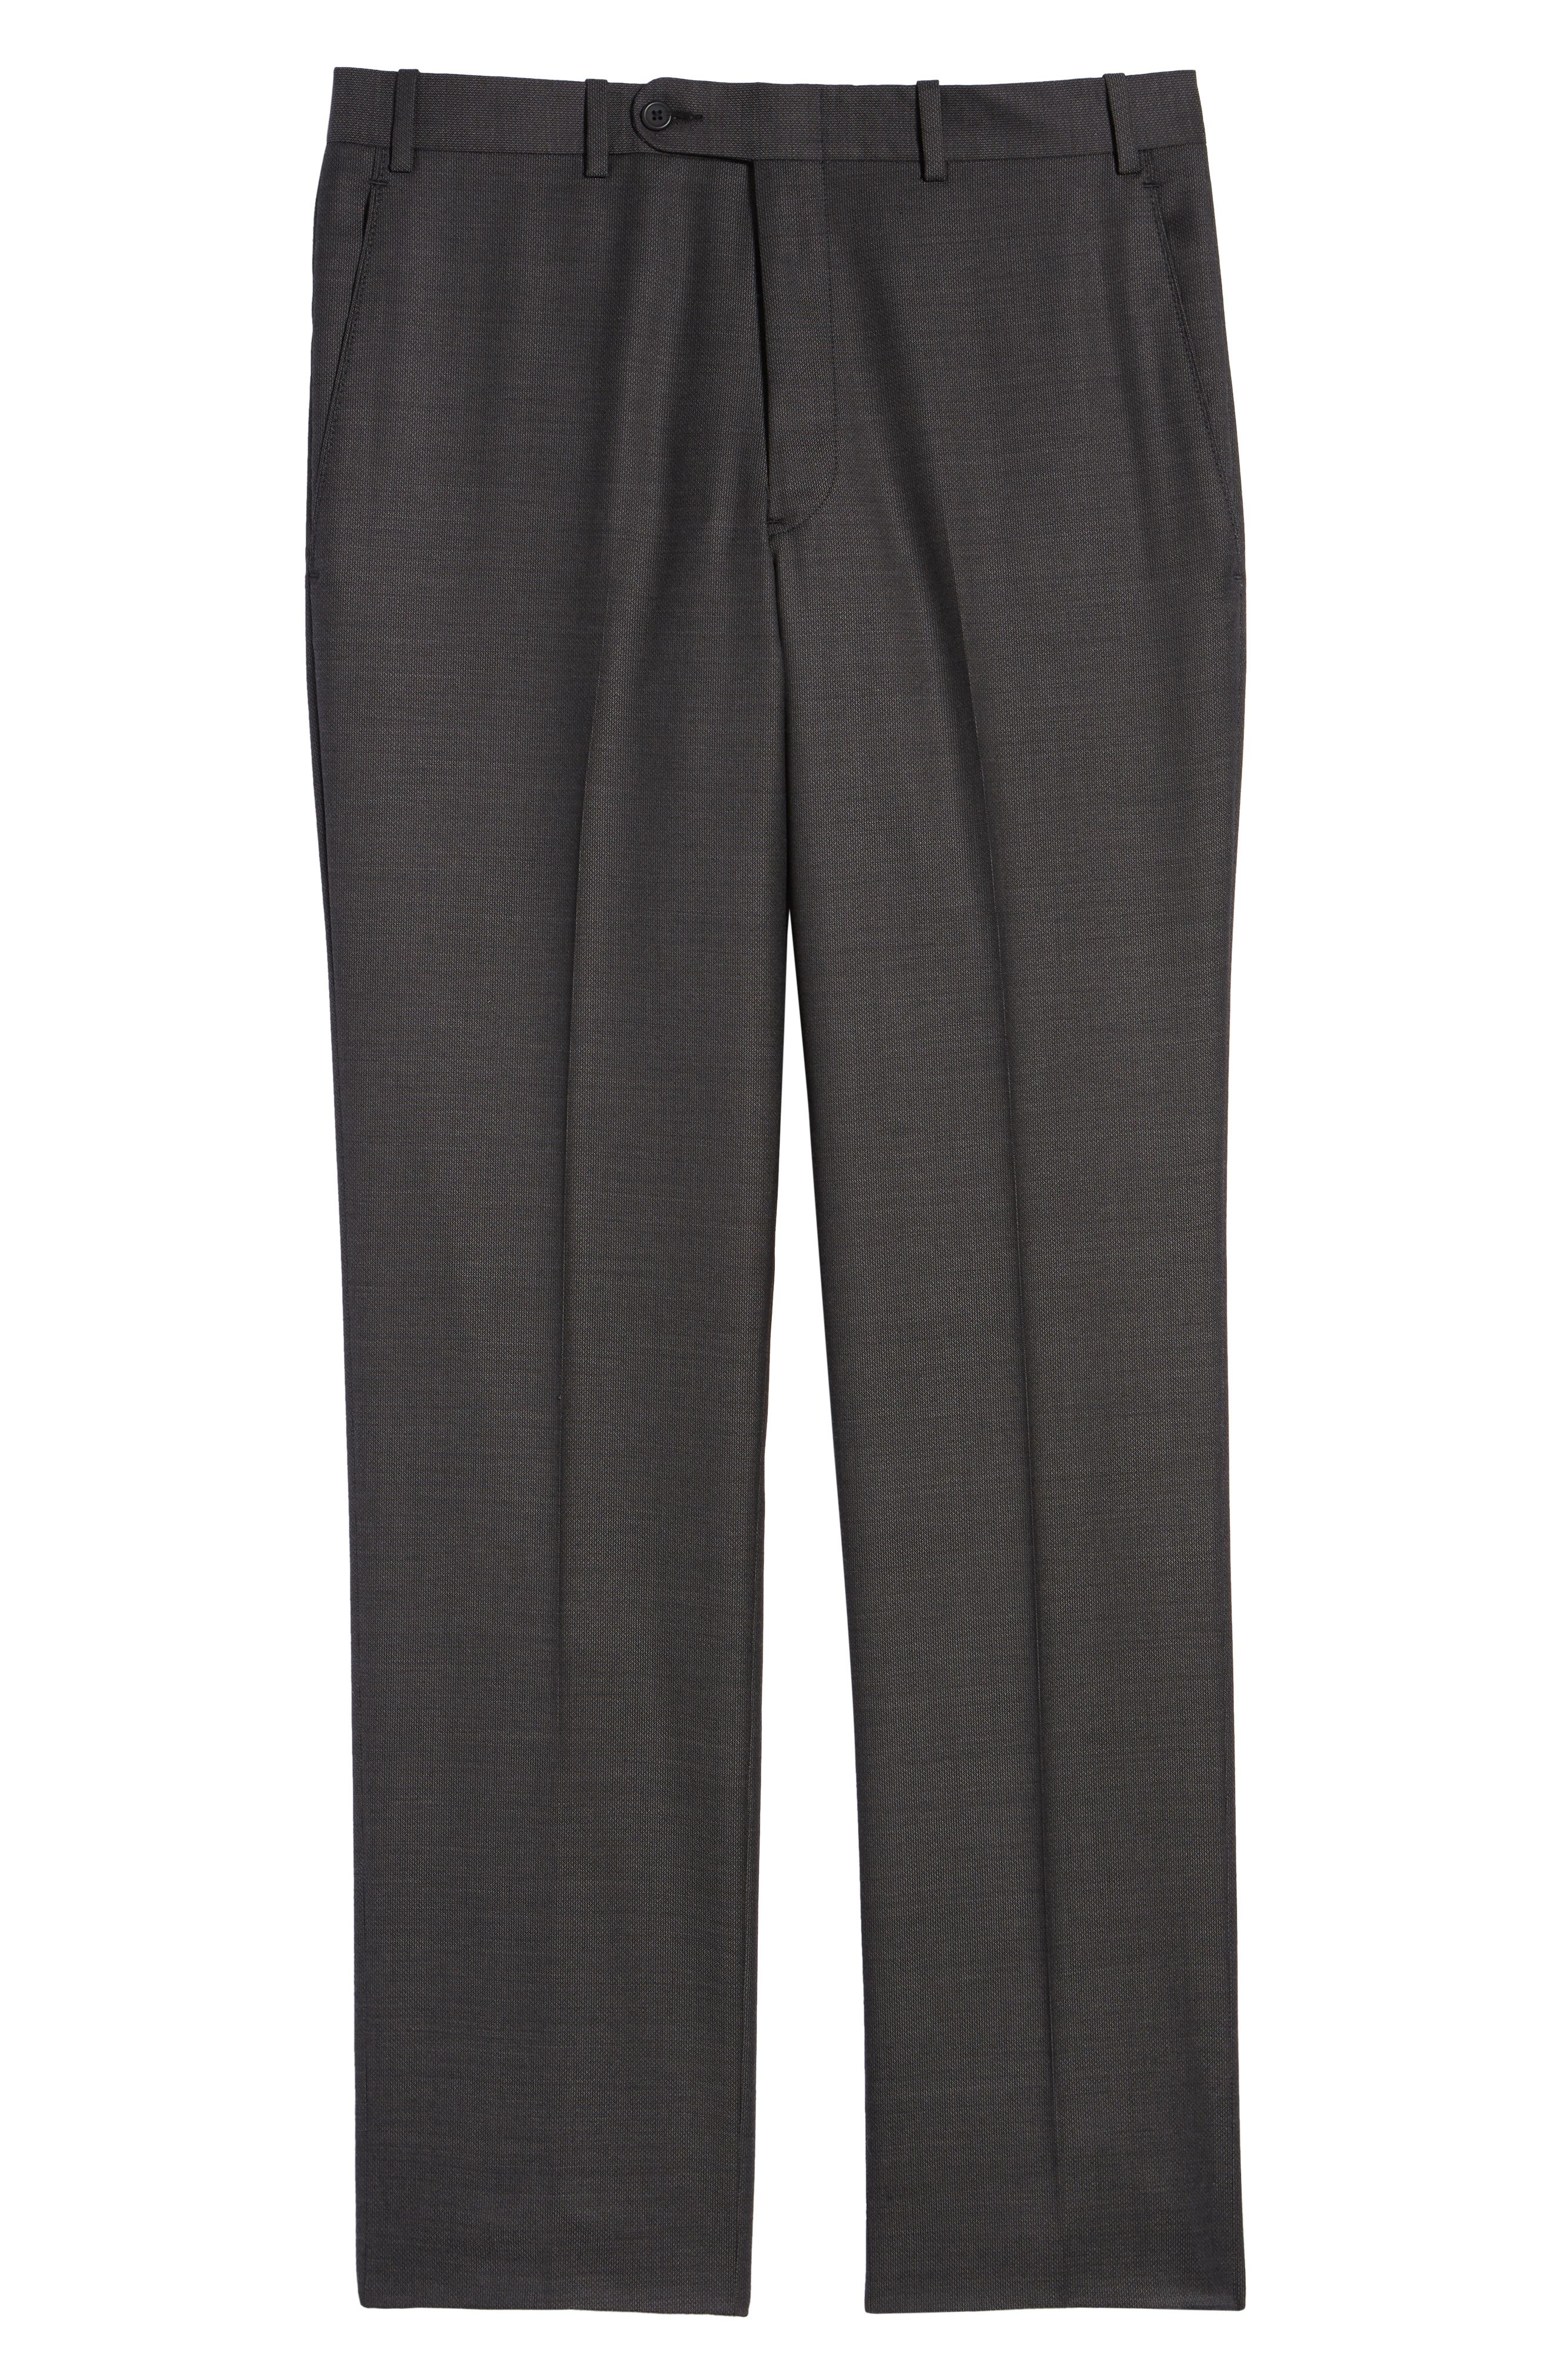 Torino Traditional Fit Flat Front Solid Wool Trousers,                             Alternate thumbnail 6, color,                             BLACK